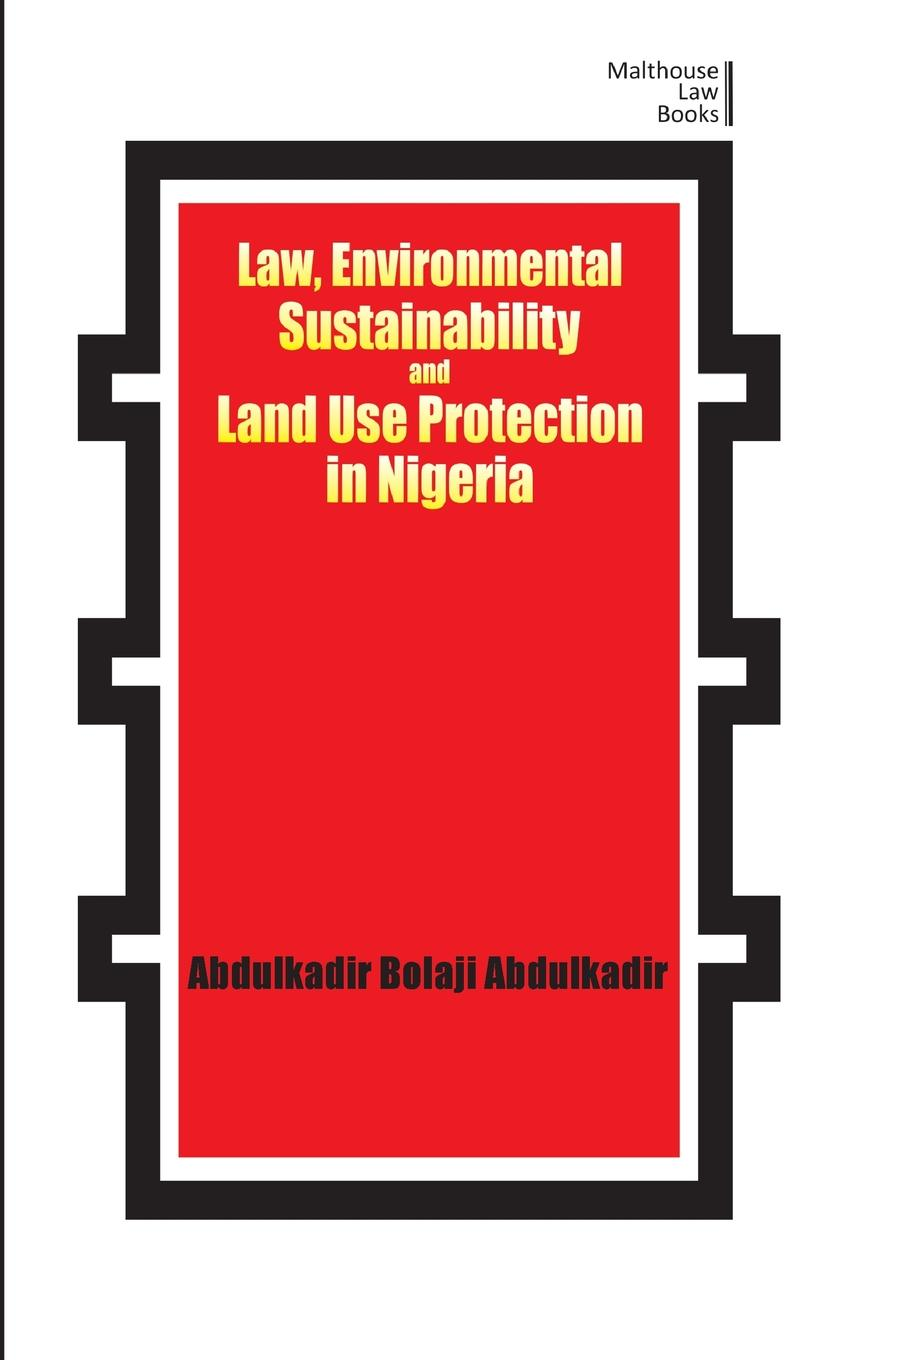 цены на Abdulkadir Bolaji Abdulkadir Law, Environmental Sustainability, Land Use Planning and Protection in Nigeria  в интернет-магазинах